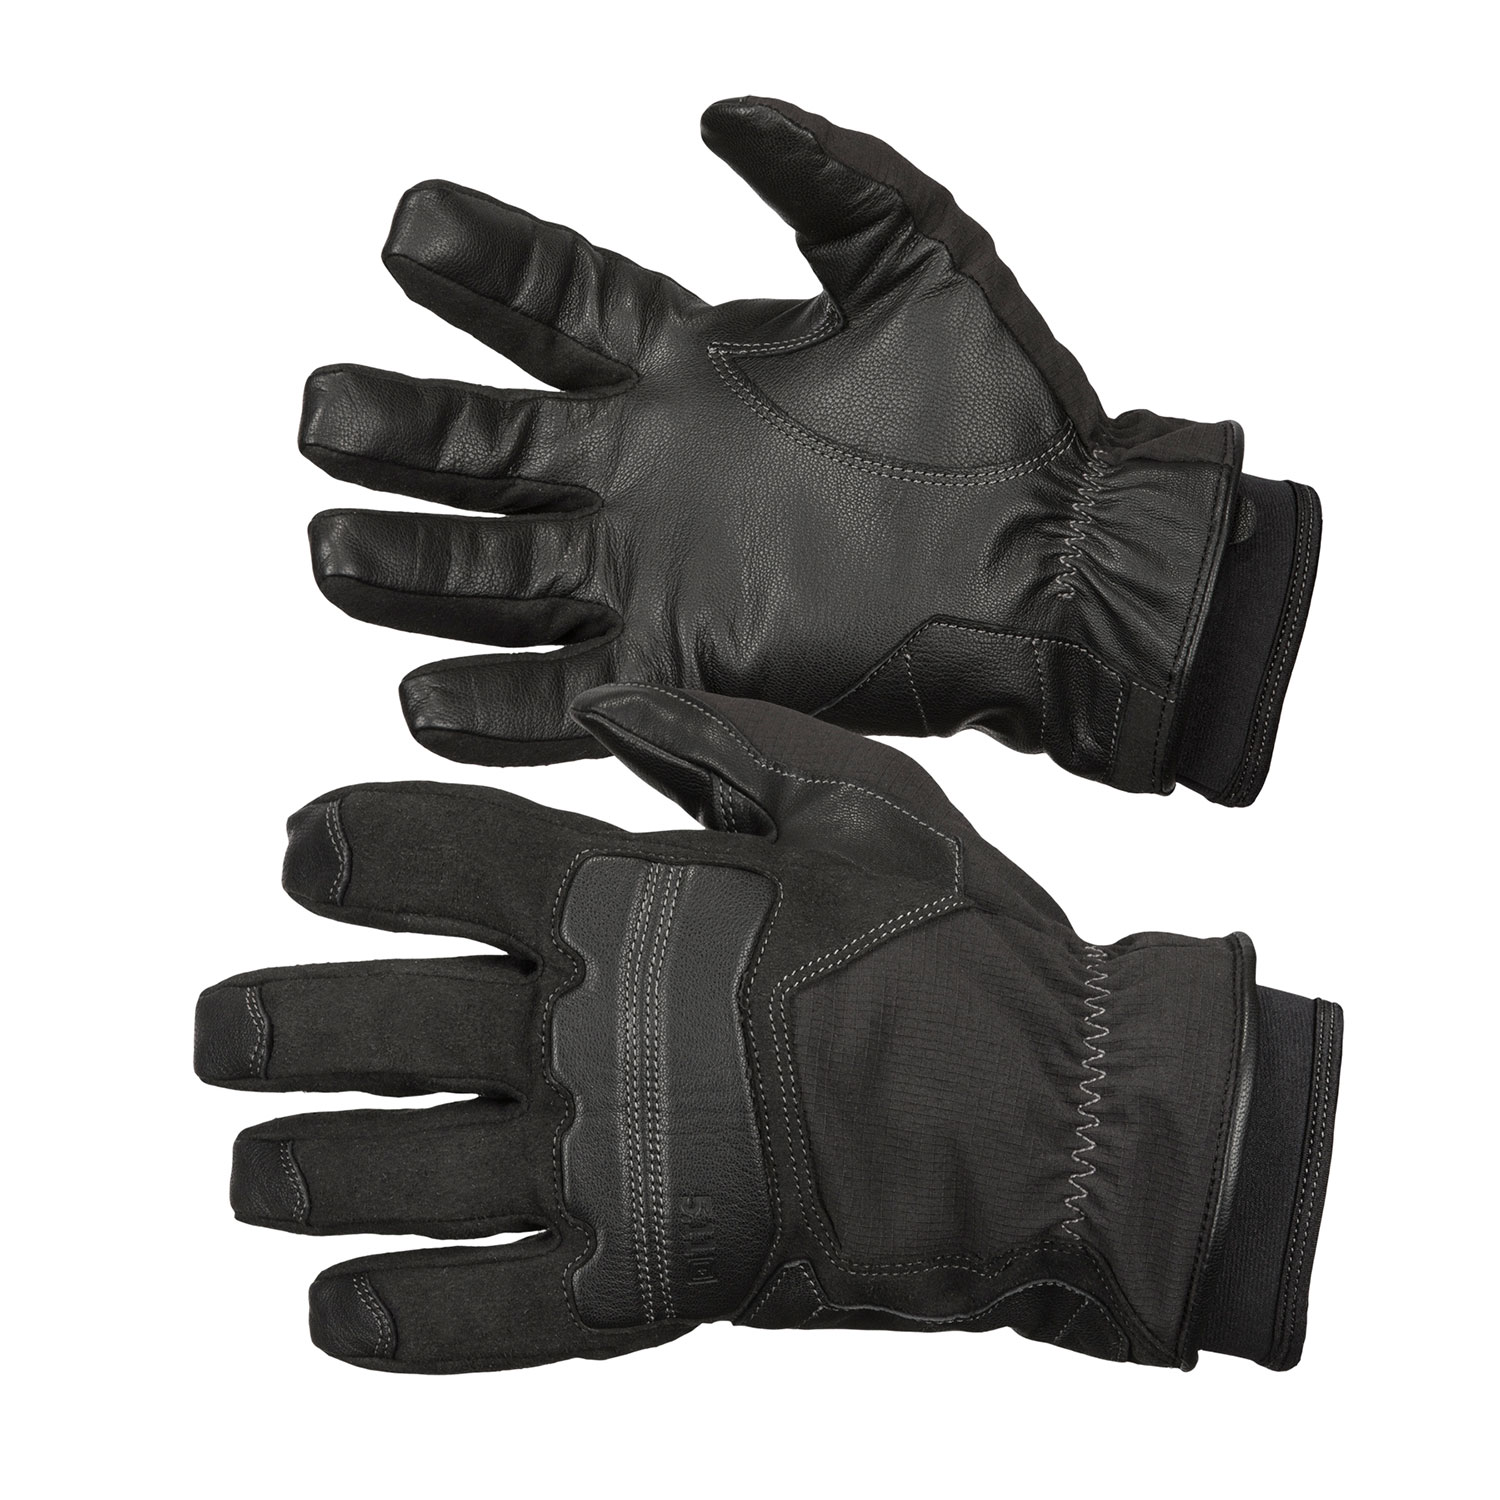 5.11 Caldus Winter Glove